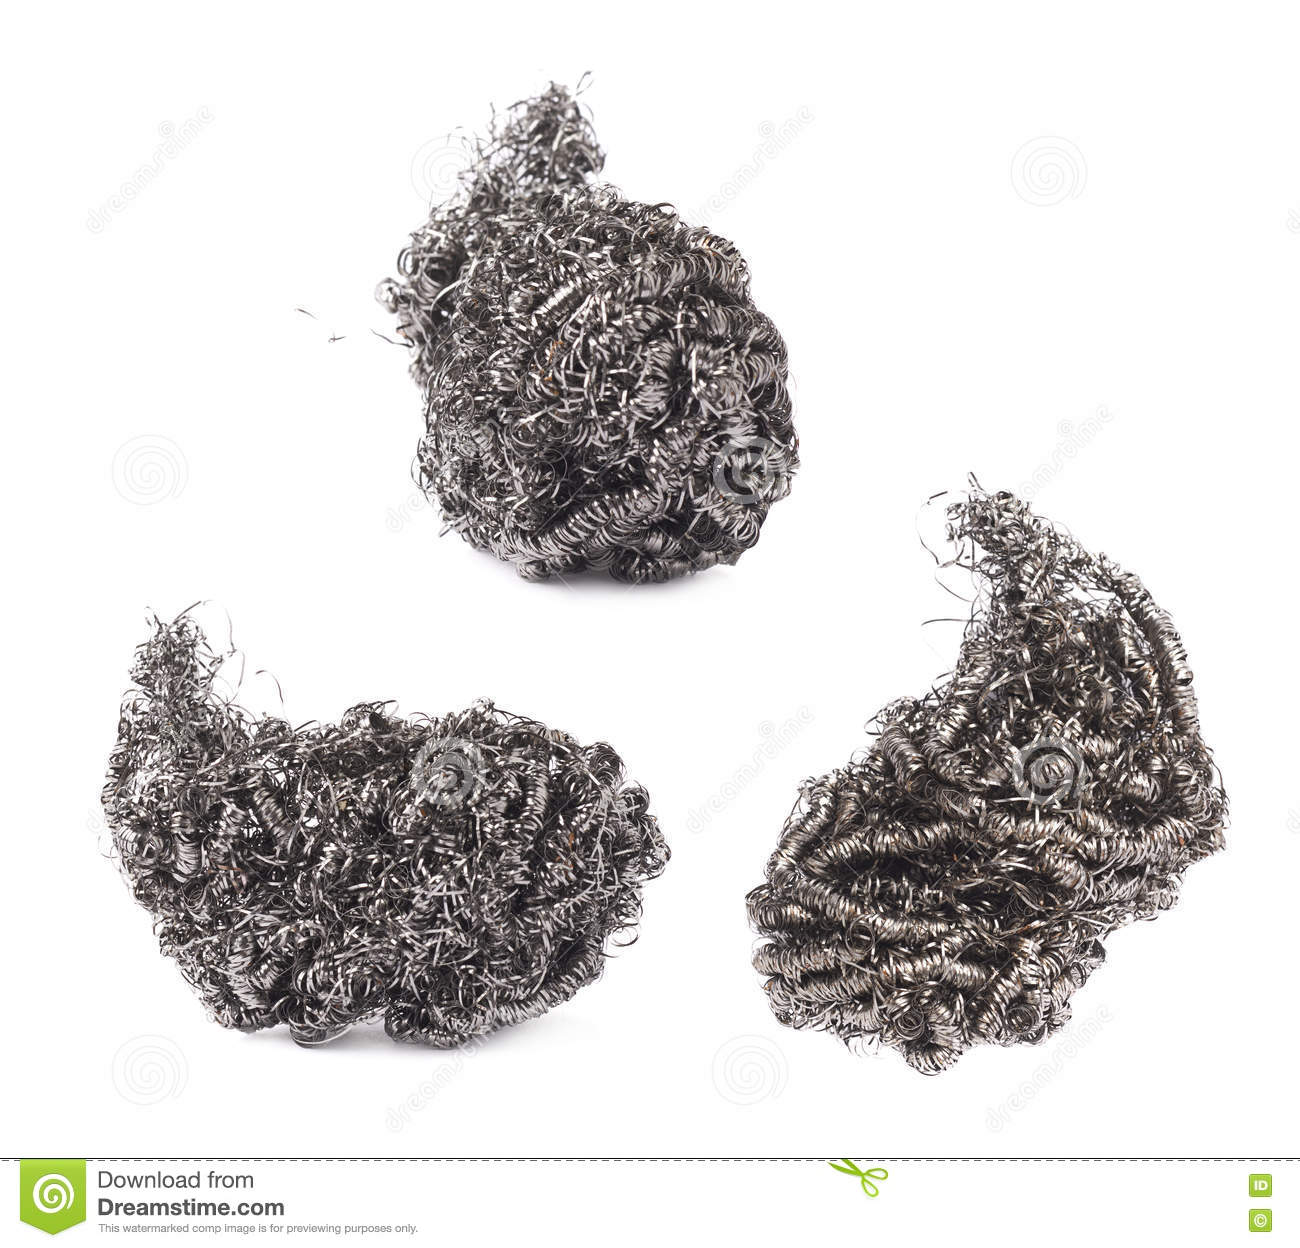 Sponge and metal cleaning scourers stock photo 43005582 - Seven different uses of the kitchen sponge ...